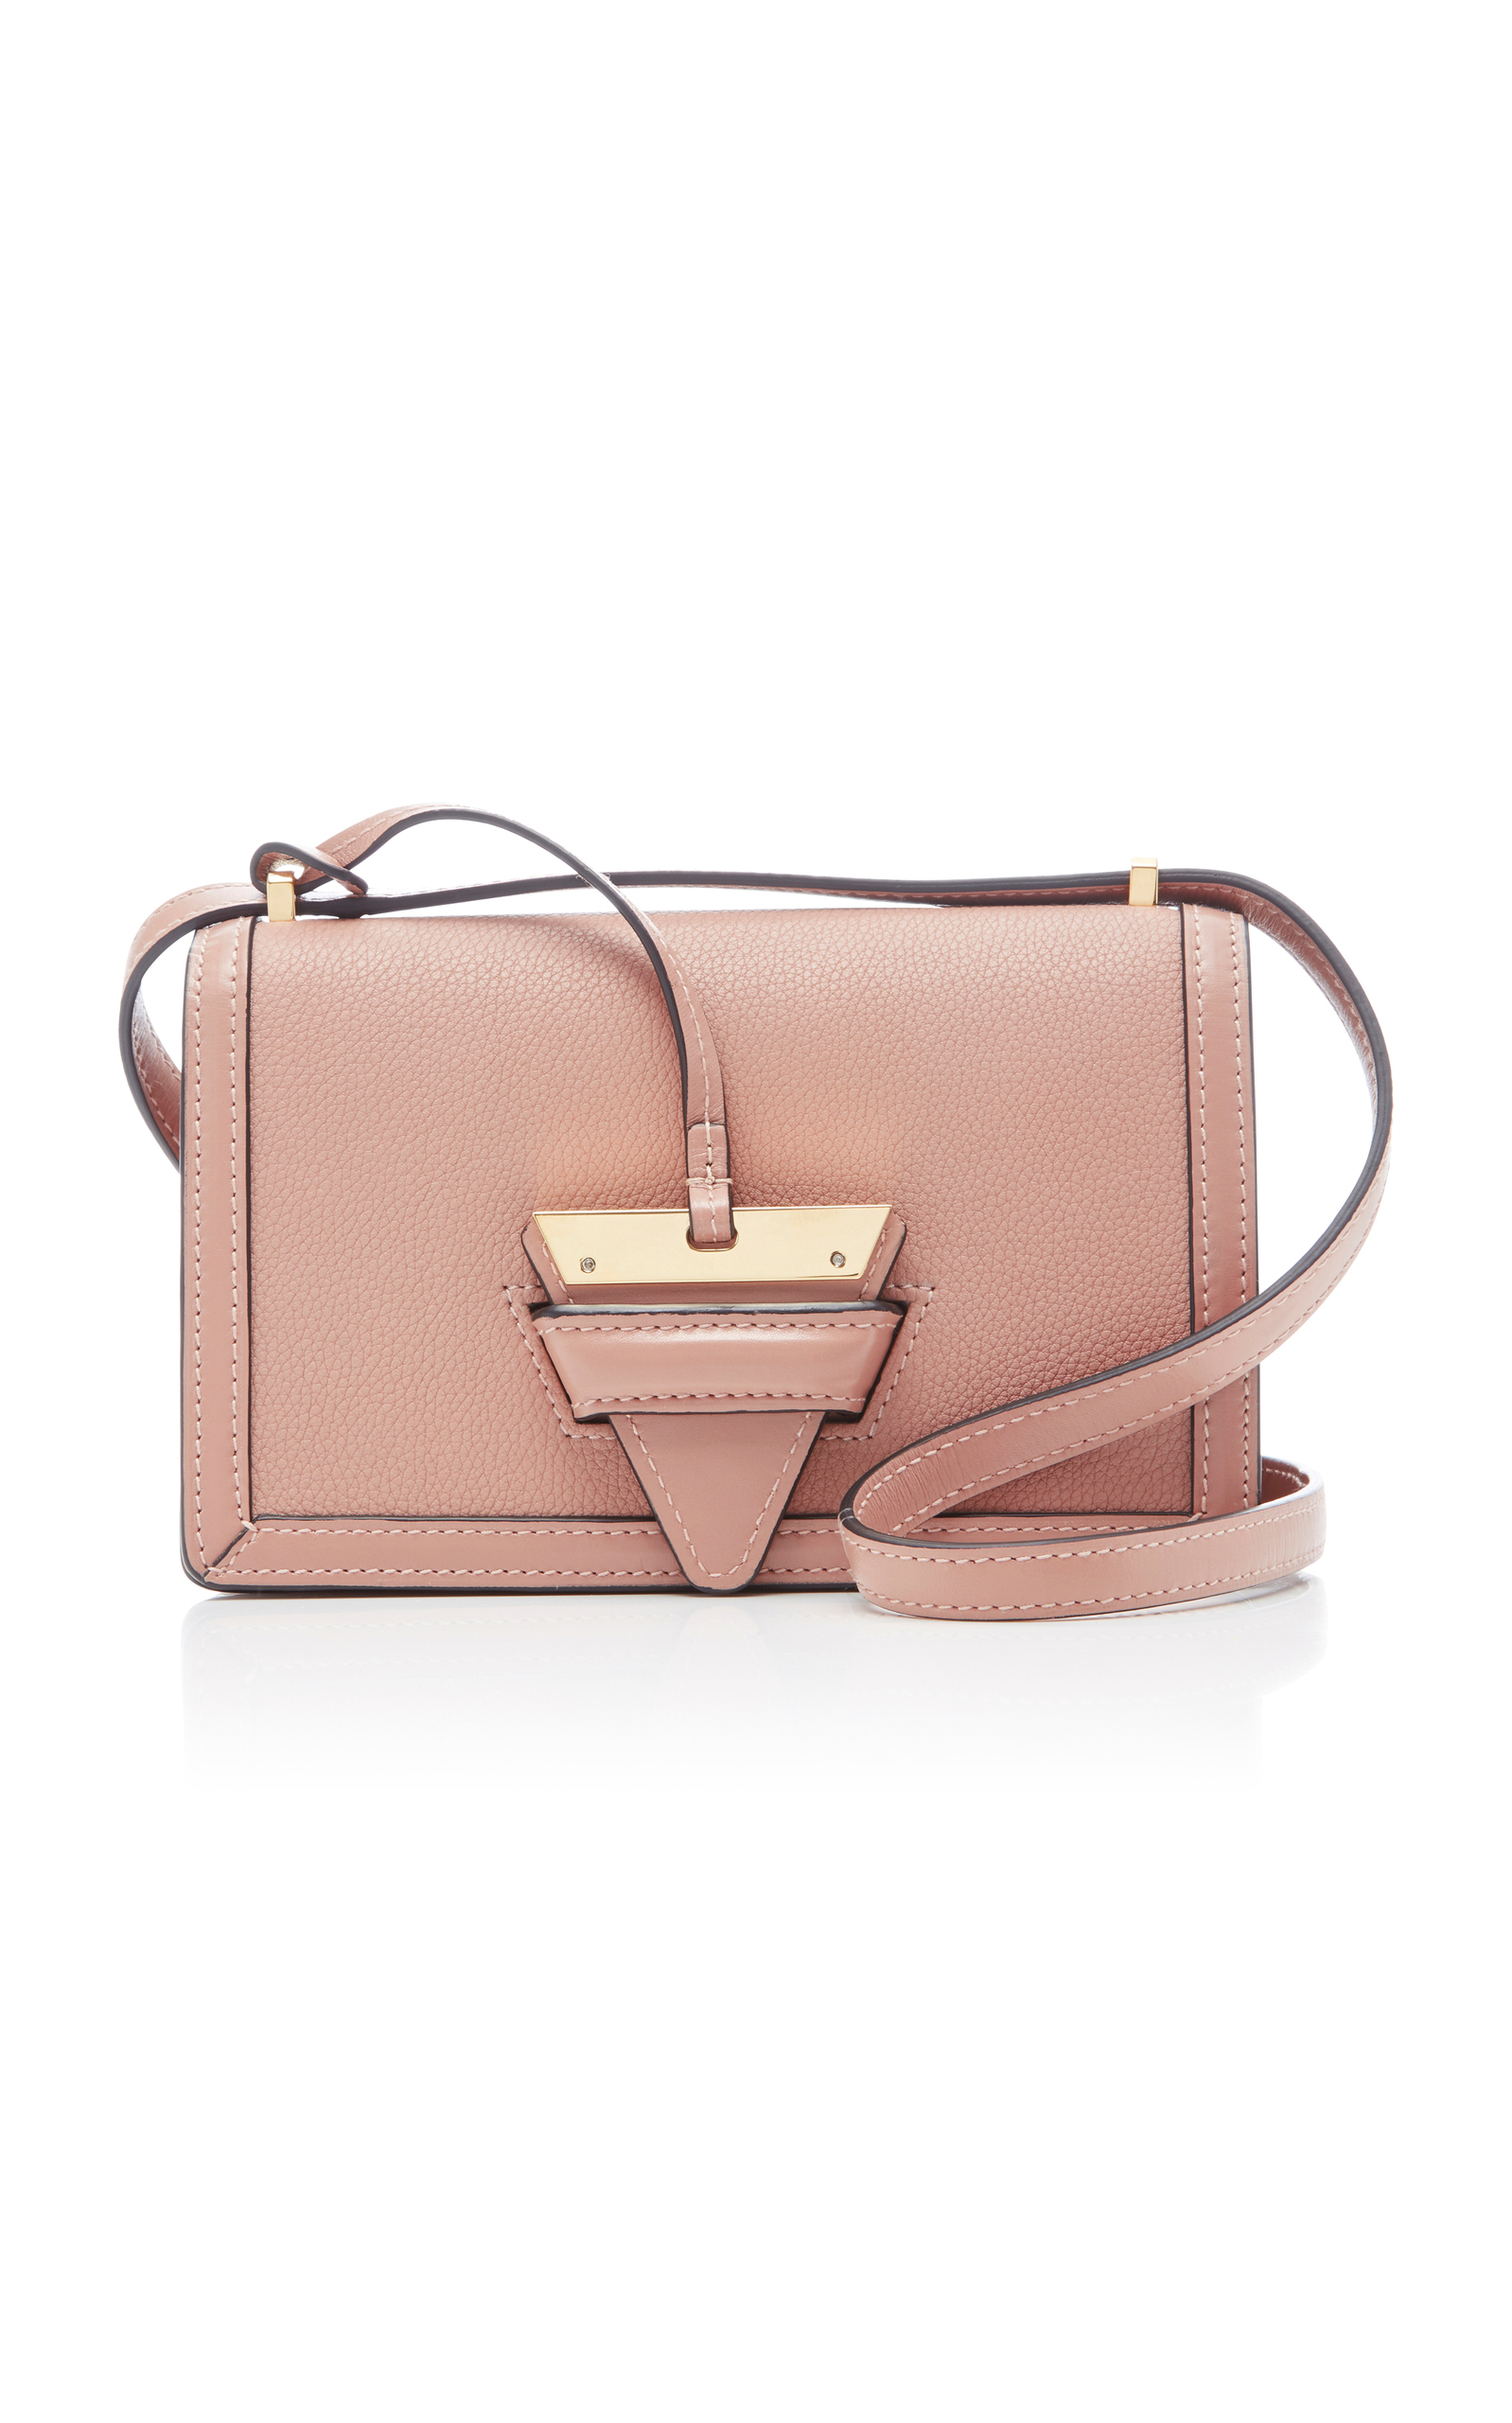 Small Barcelona Grainy Leather Crossbody Bag - Beige, Pink